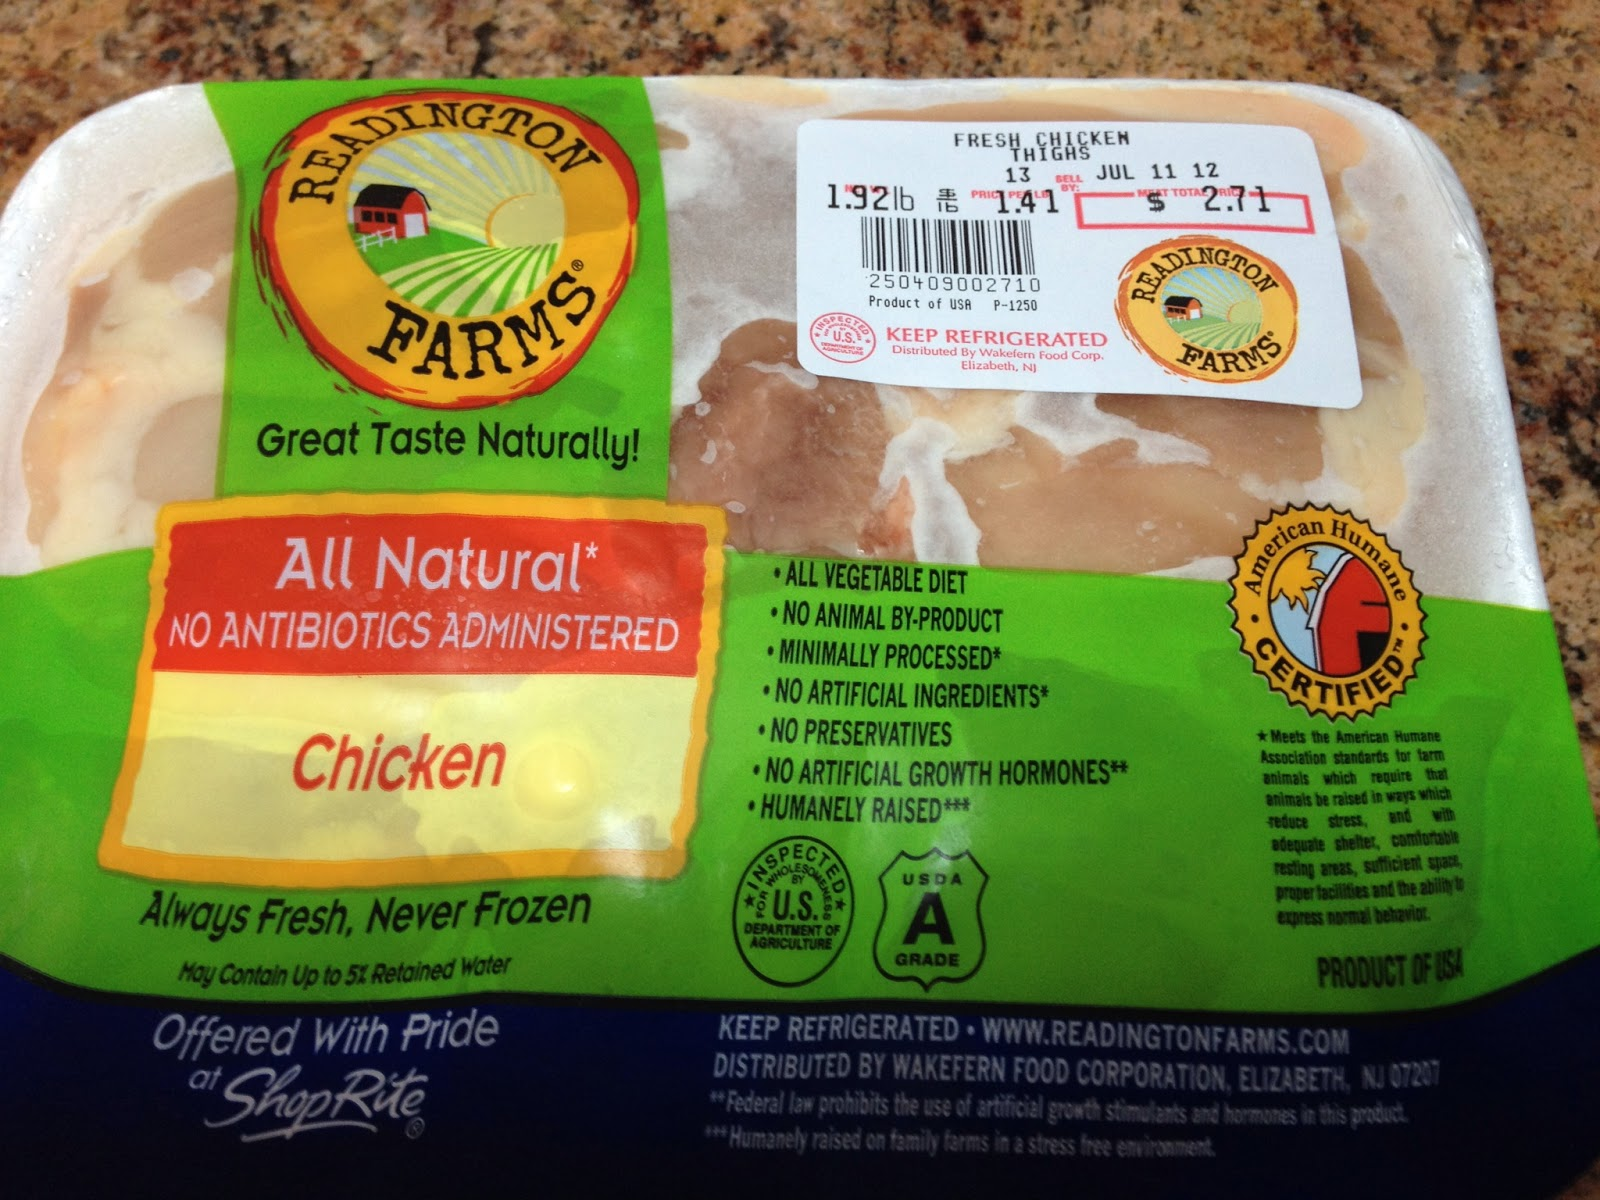 Jun 12, · Tyson Foods Inc. has issued a recall for 3, pounds of frozen chicken tenders in the United States due to the risk there might be blue and clear soft plastic pieces inside the product.